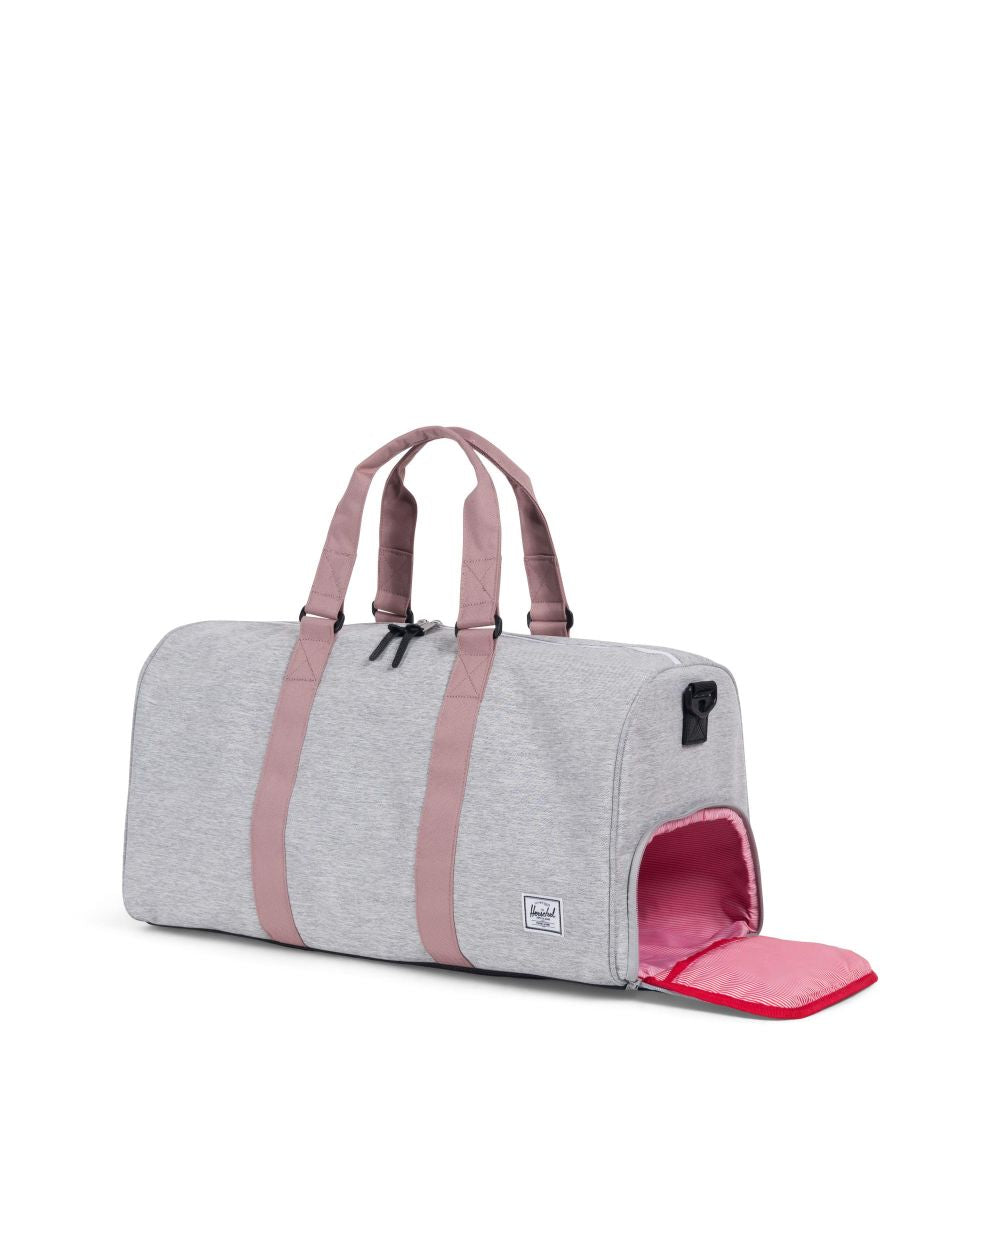 NOVEL DUFFLE MID-VOLUME GREY - ASH ROSE